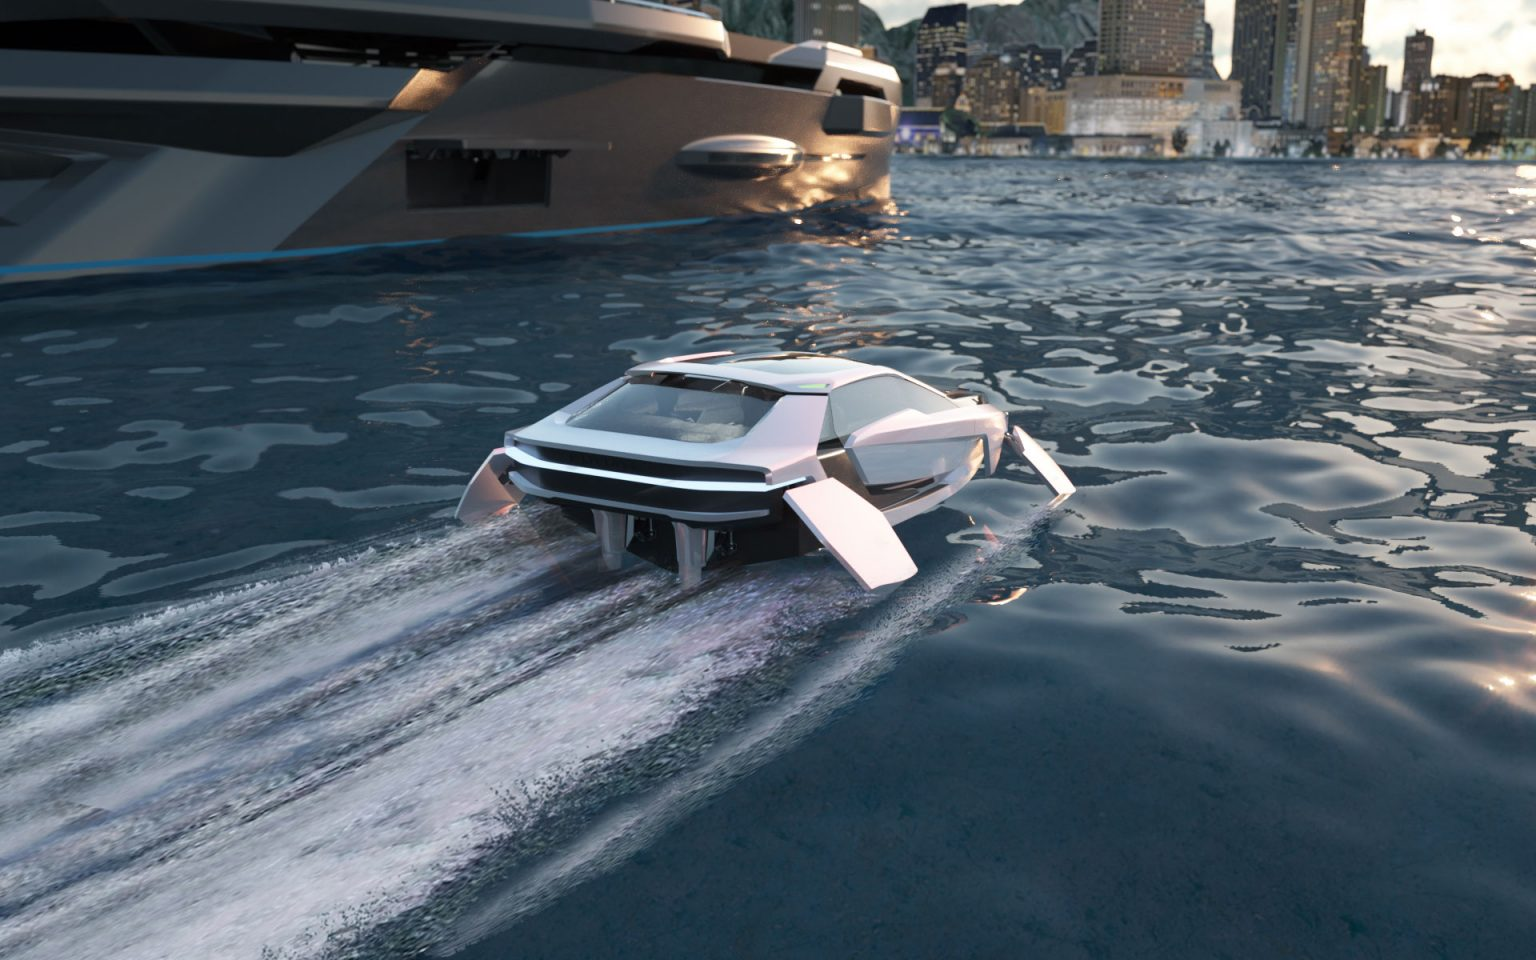 render of Futur-E cruising from rear with yacht in background